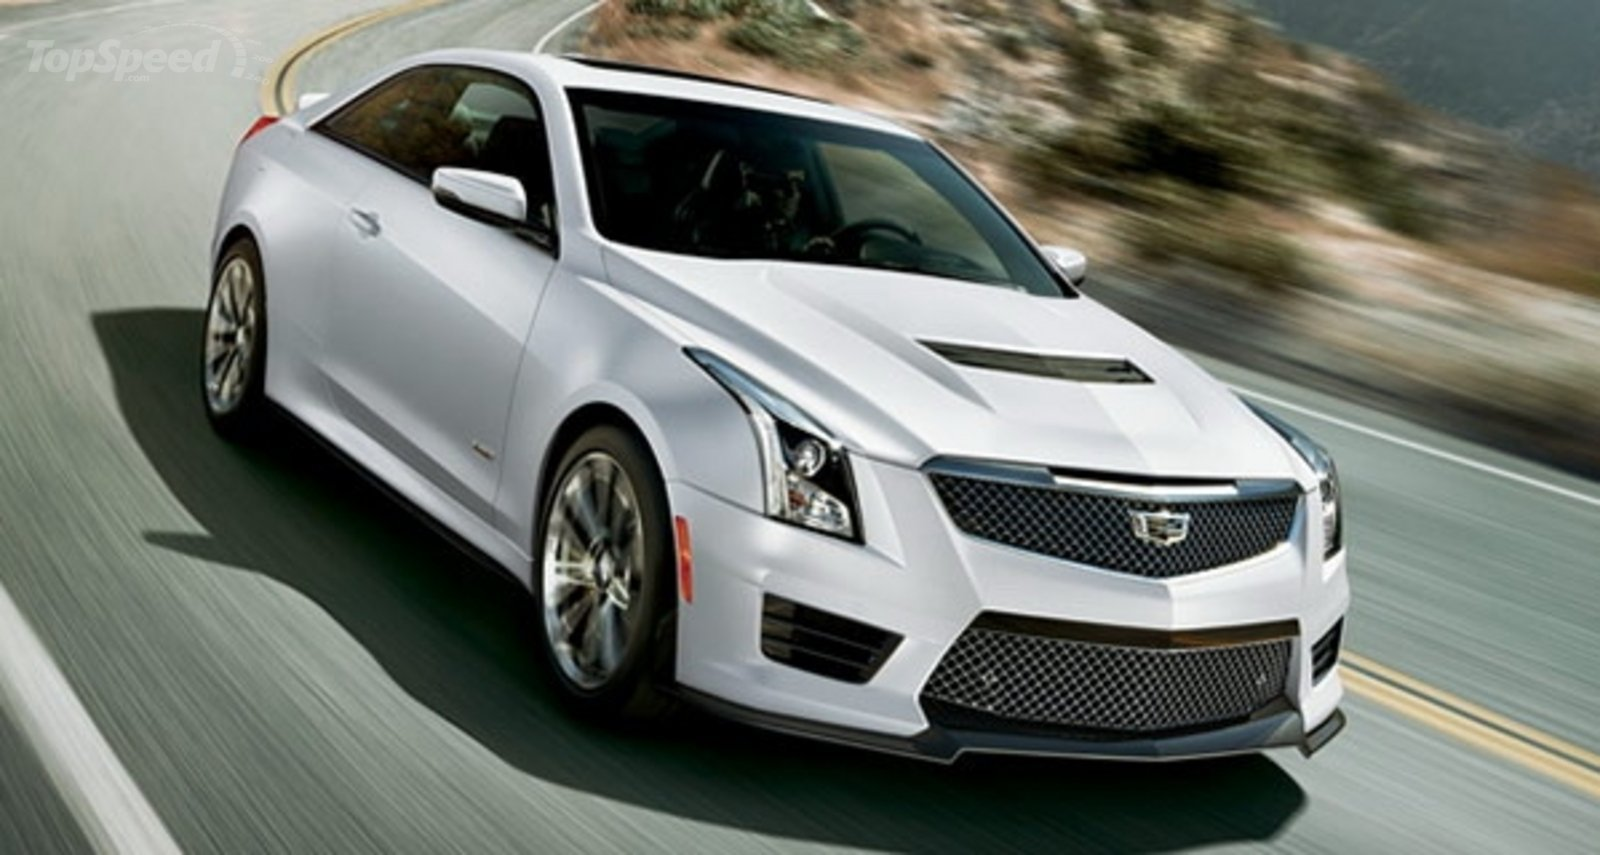 Cadillac Ats V Coupe >> 2016 Cadillac ATS-V Crystal White Frost Edition Review - Top Speed